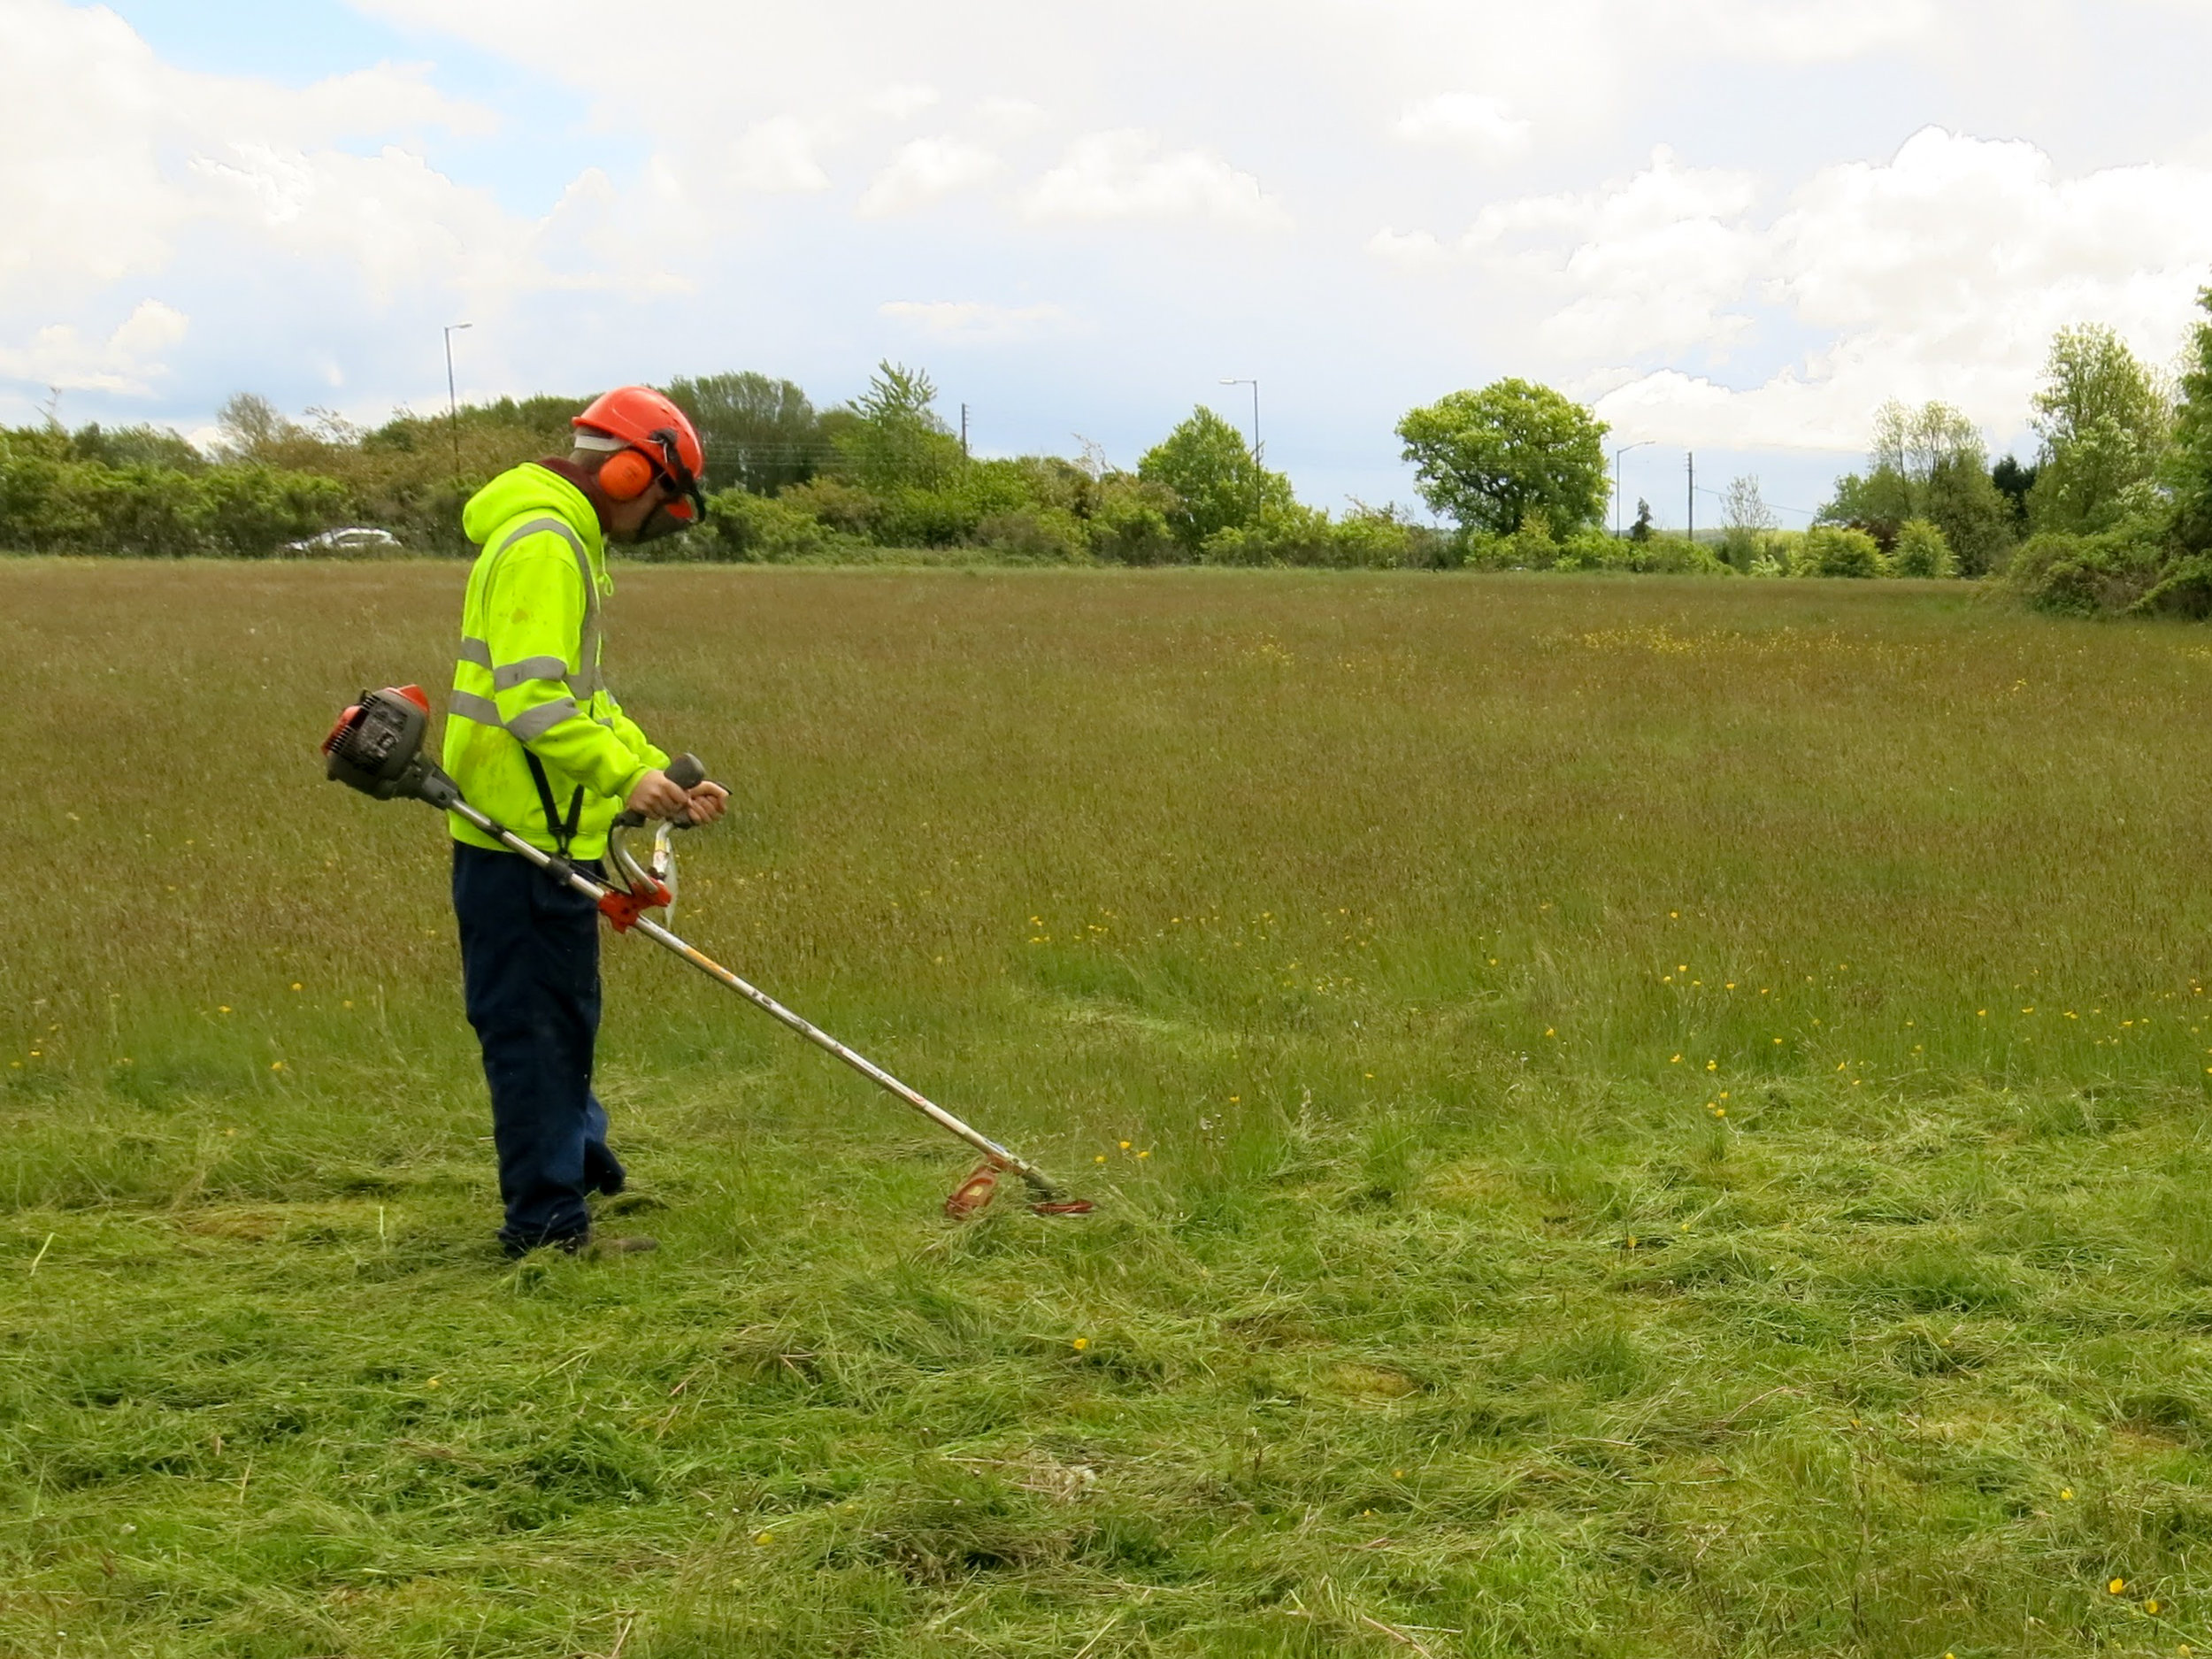 Precautionary strimming of grassland to allow the ecologist to search the working area for  great crested newts  prior to trial pit works commencing on site. This allowed the pre-commencement works to start before a  licence  was in hand, therefore minimising delays to the programme.